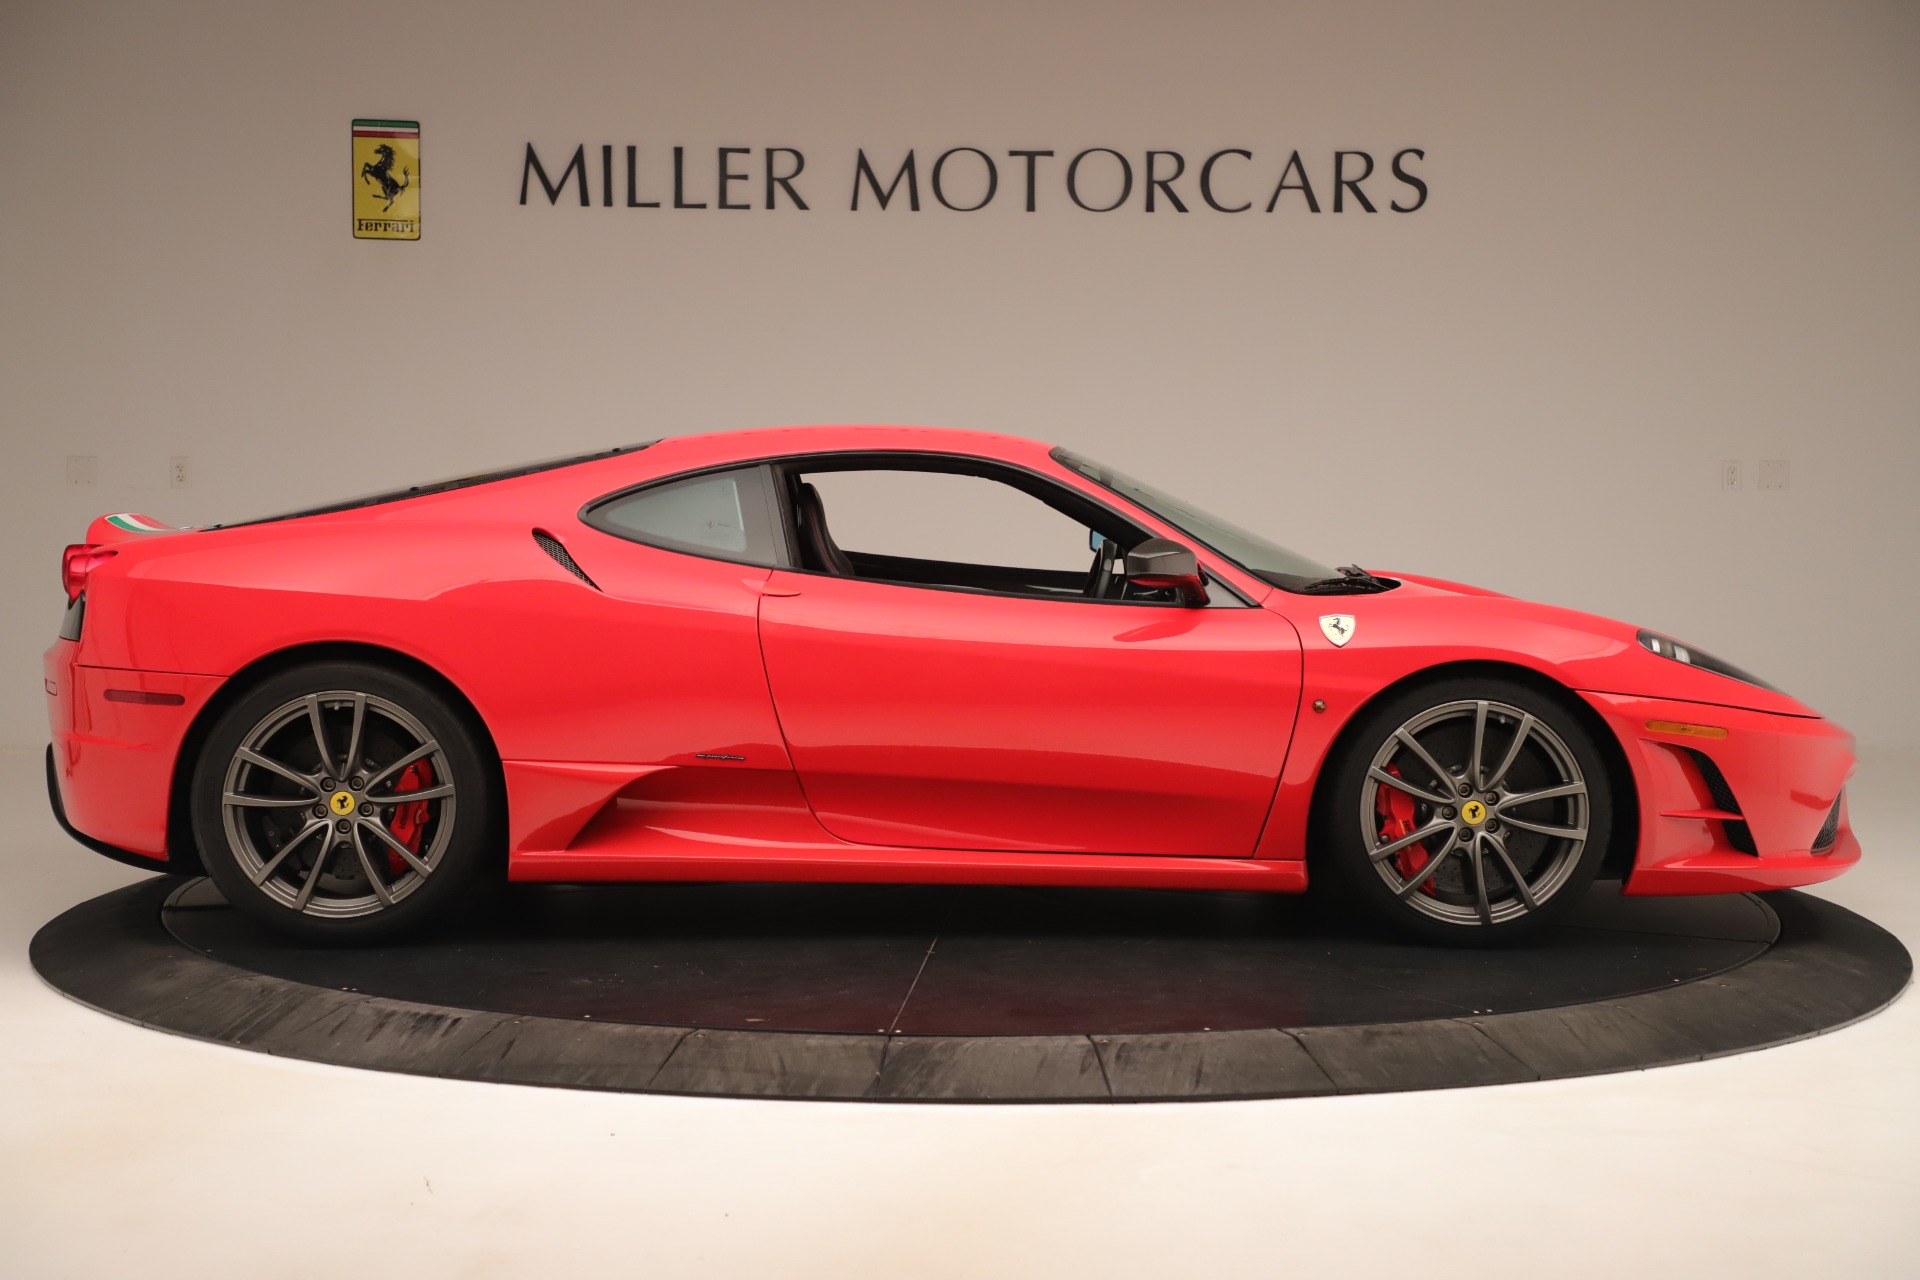 Used 2008 Ferrari F430 Scuderia For Sale In Greenwich, CT 3381_p9